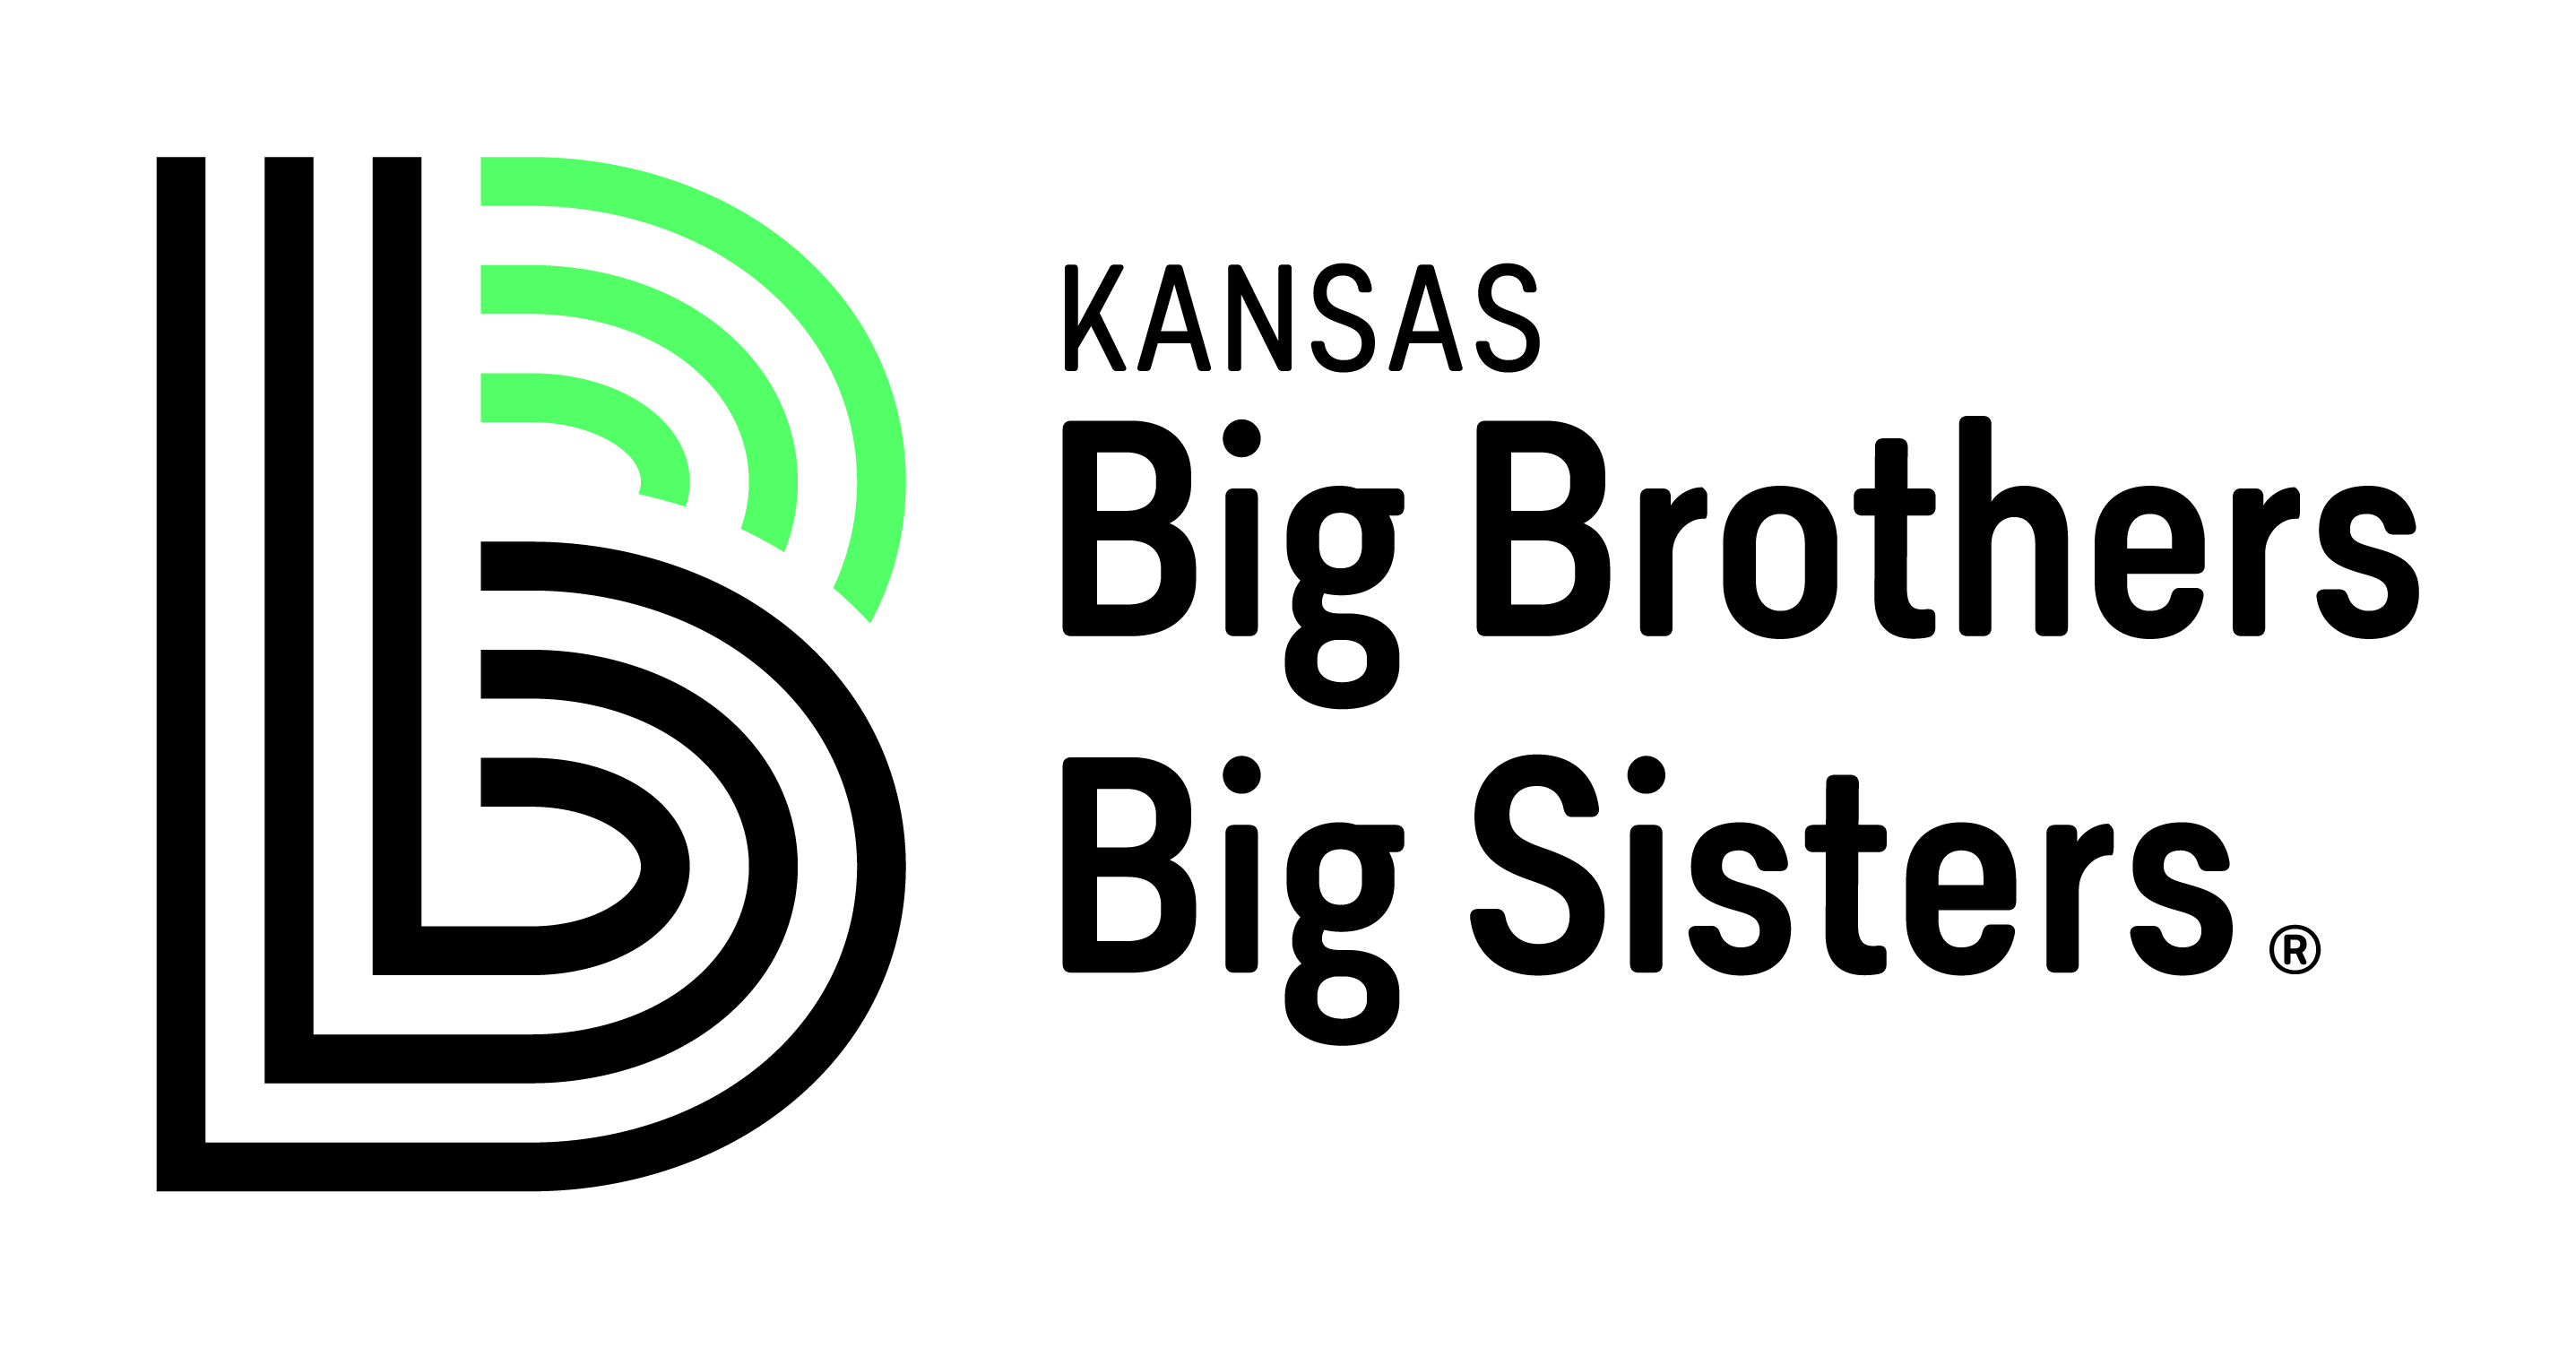 Kansas Big Brothers Big Sisters - East Central KS